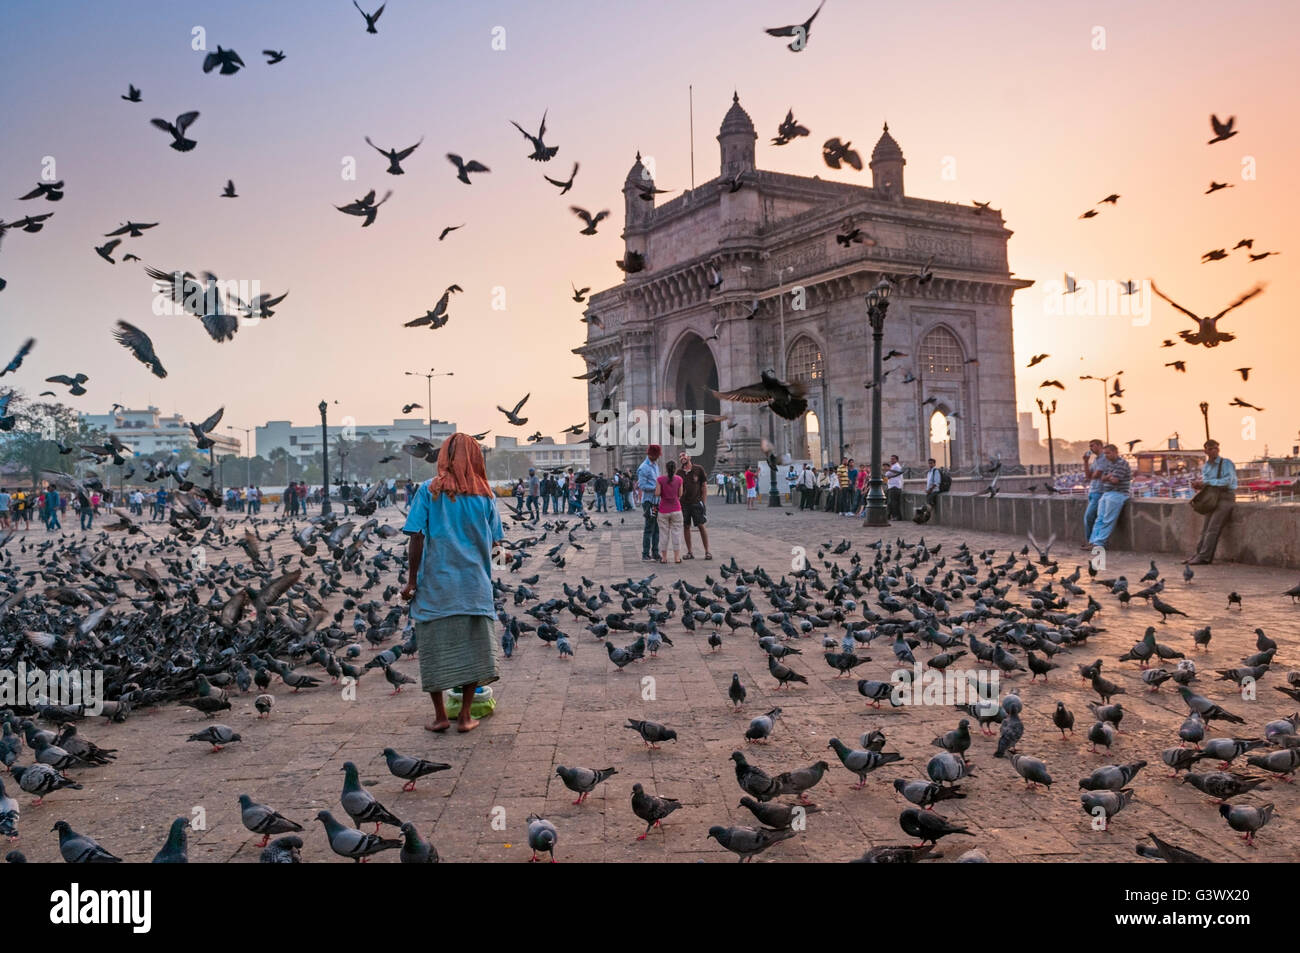 Gateway of India Mumbai Bombay in India Immagini Stock